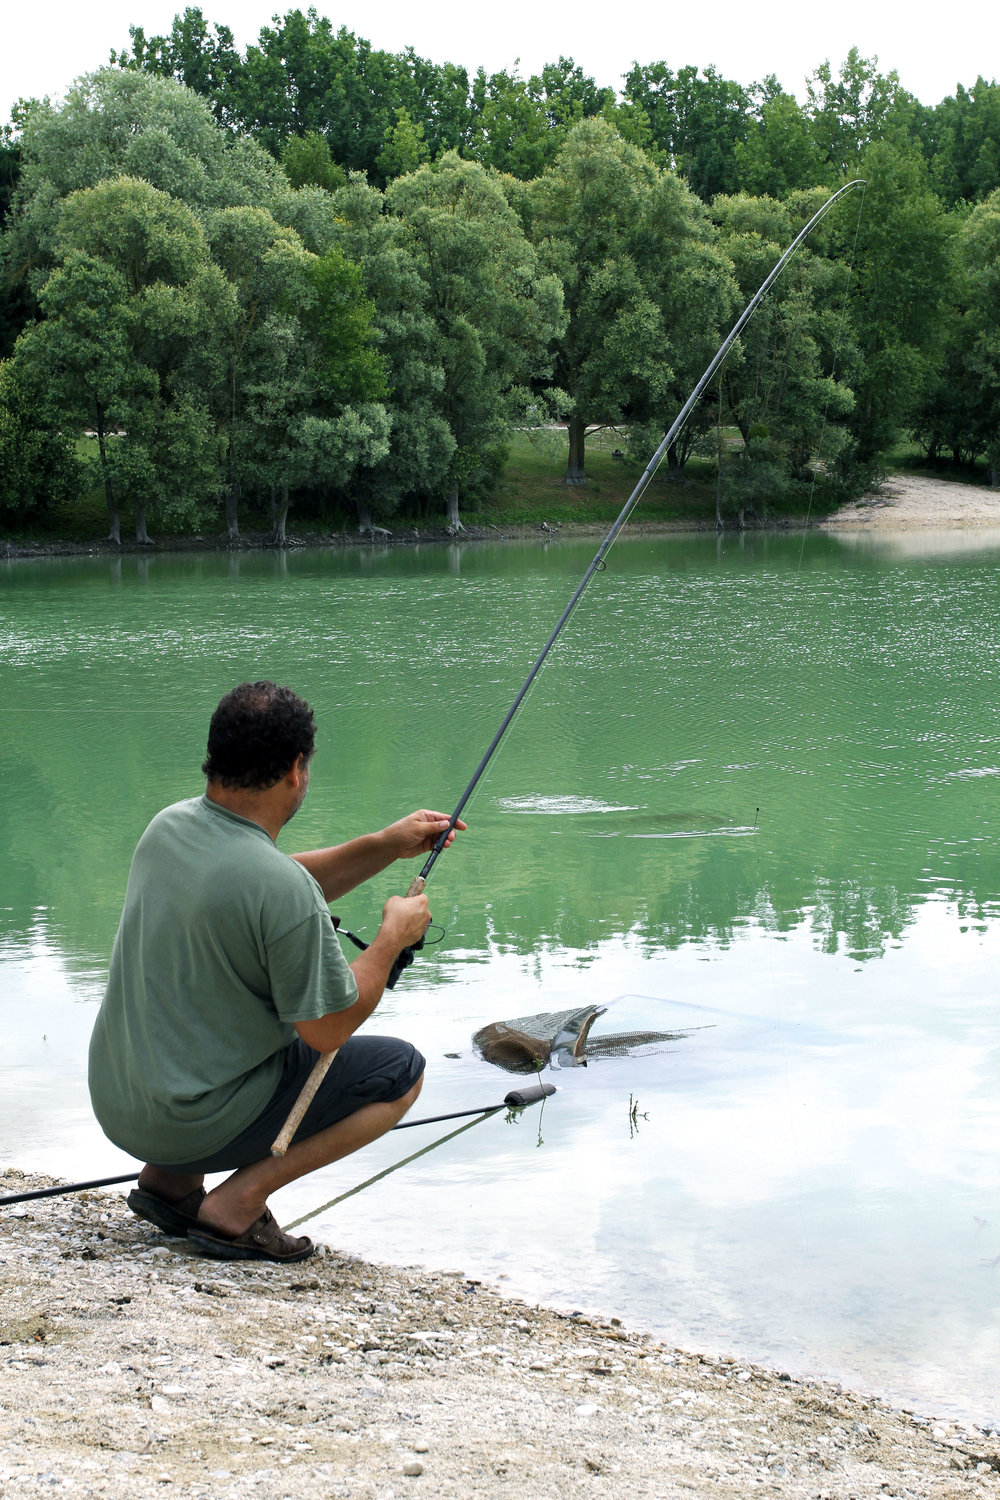 17-Lovely-to-be-catching-them-out-the-edge-on-my-soft-rods.jpg